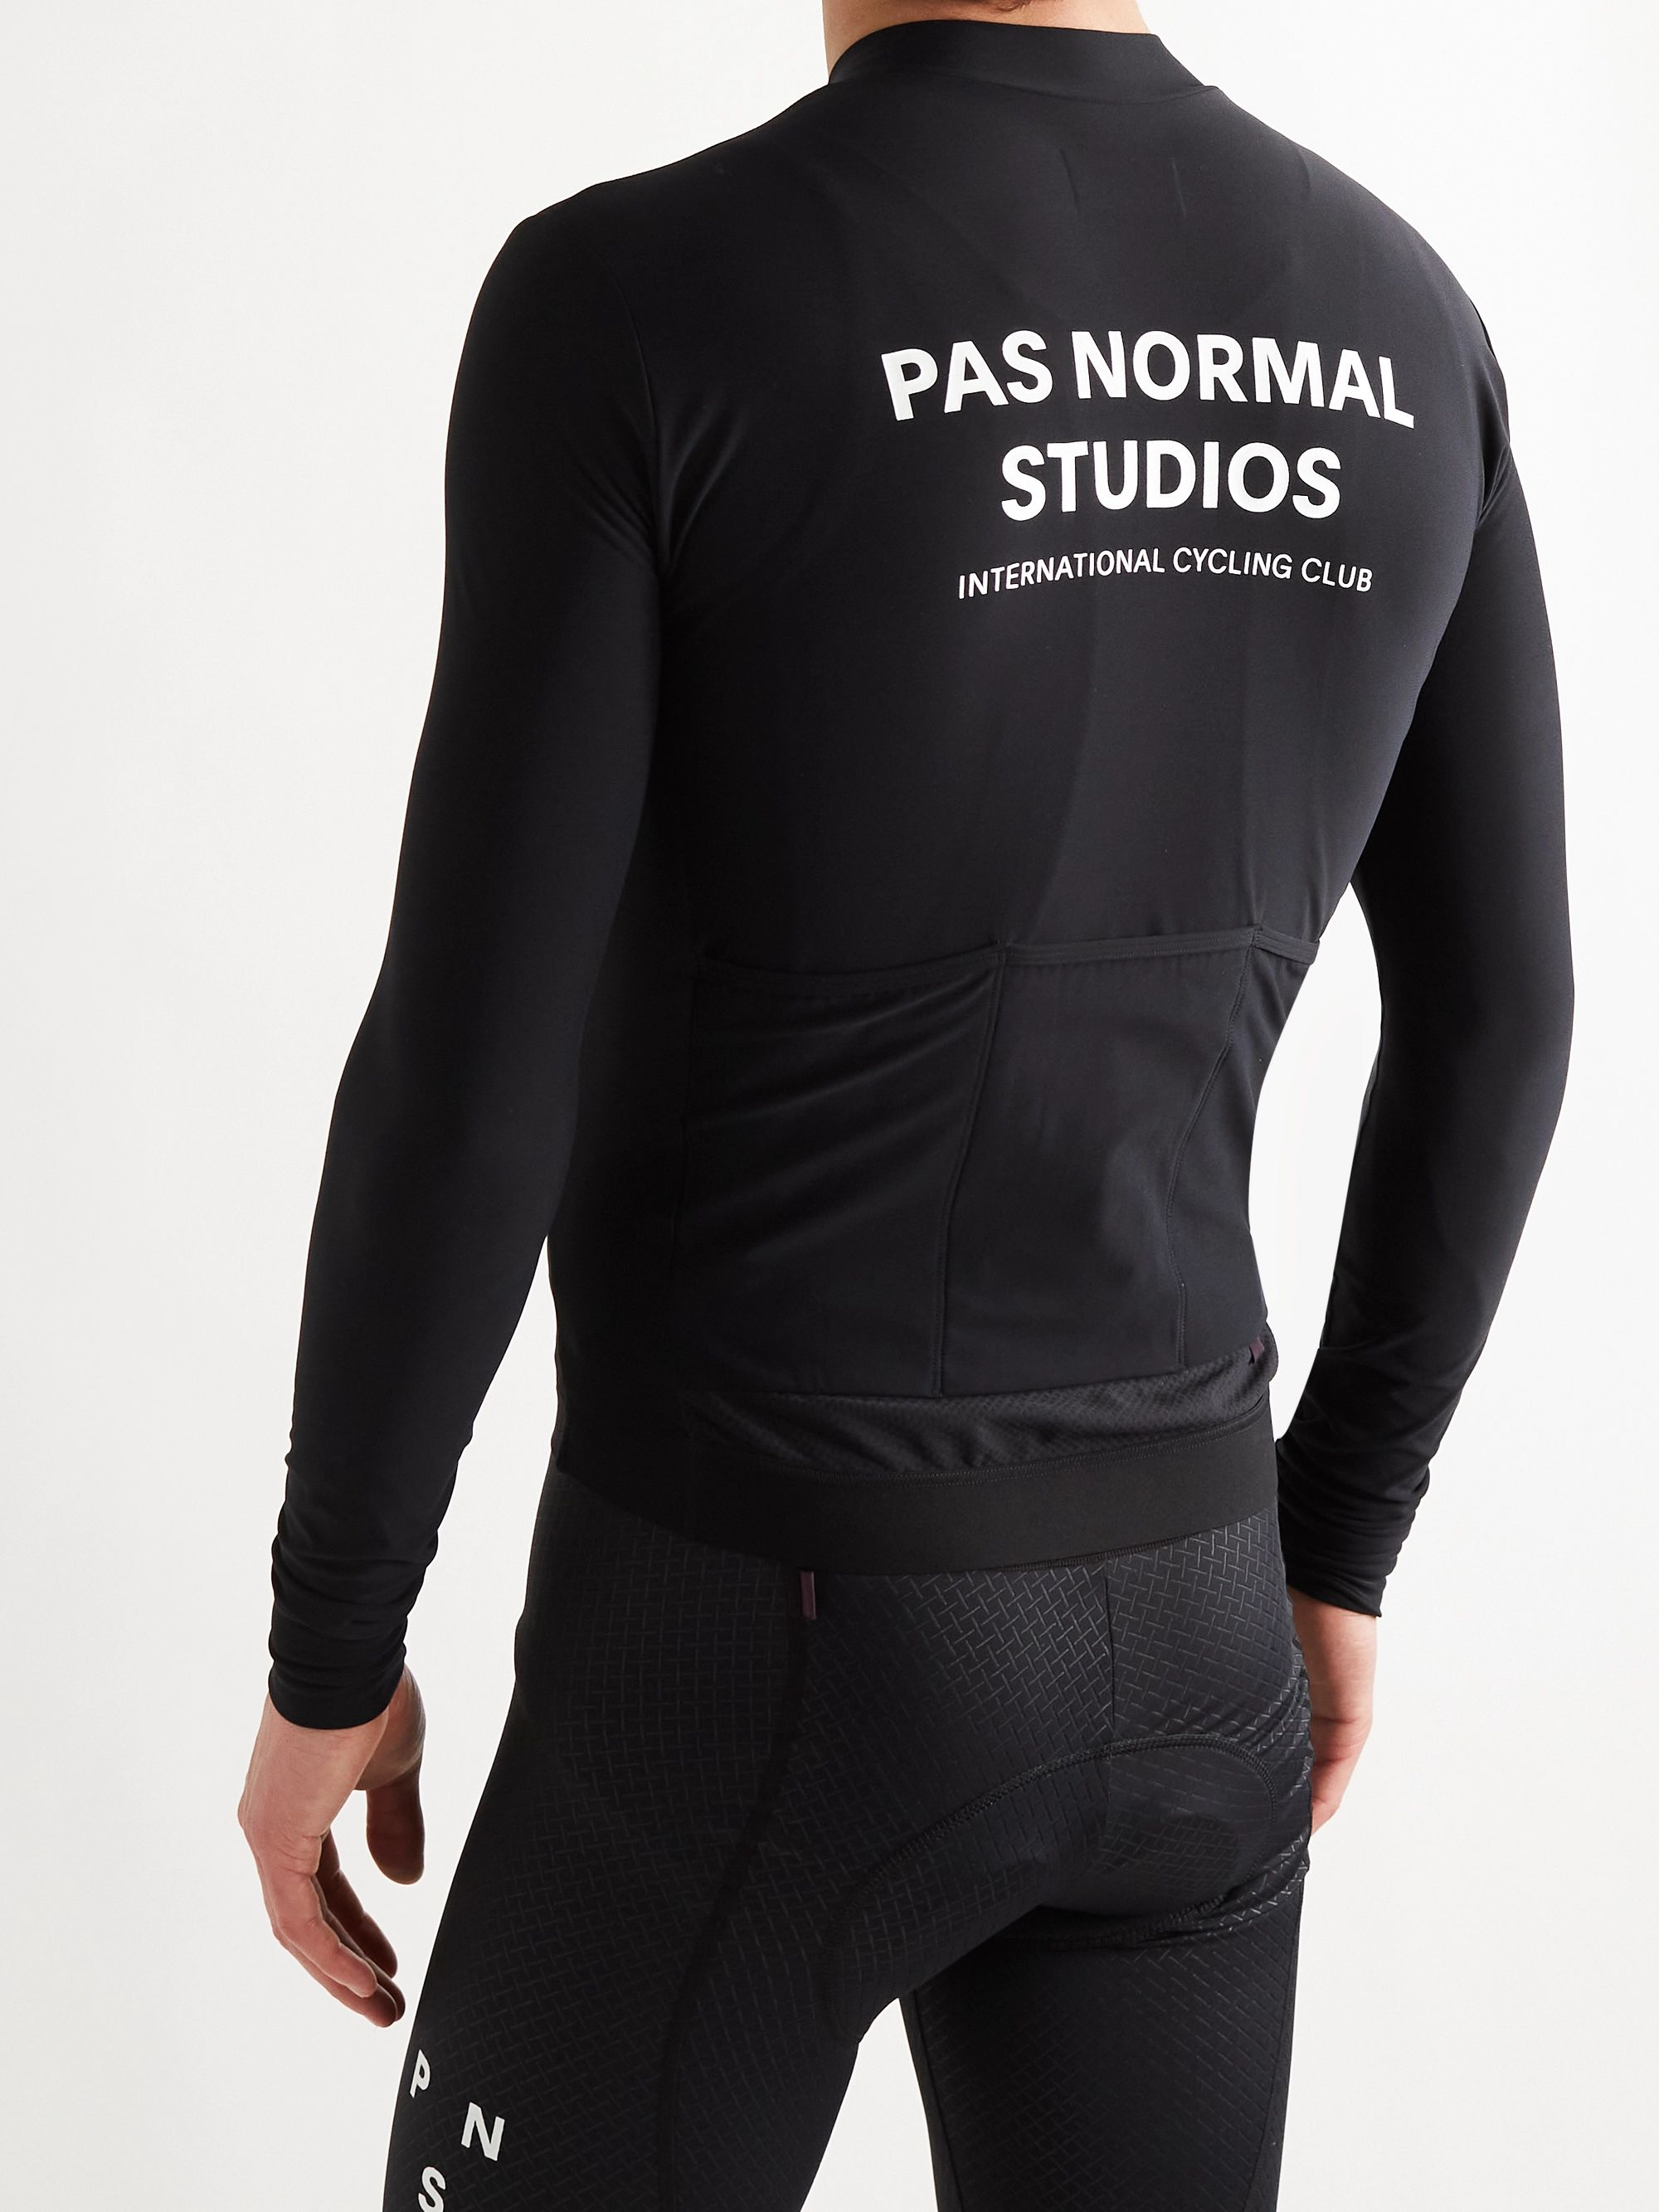 PAS NORMAL STUDIOS Logo-Print Cycling Jersey